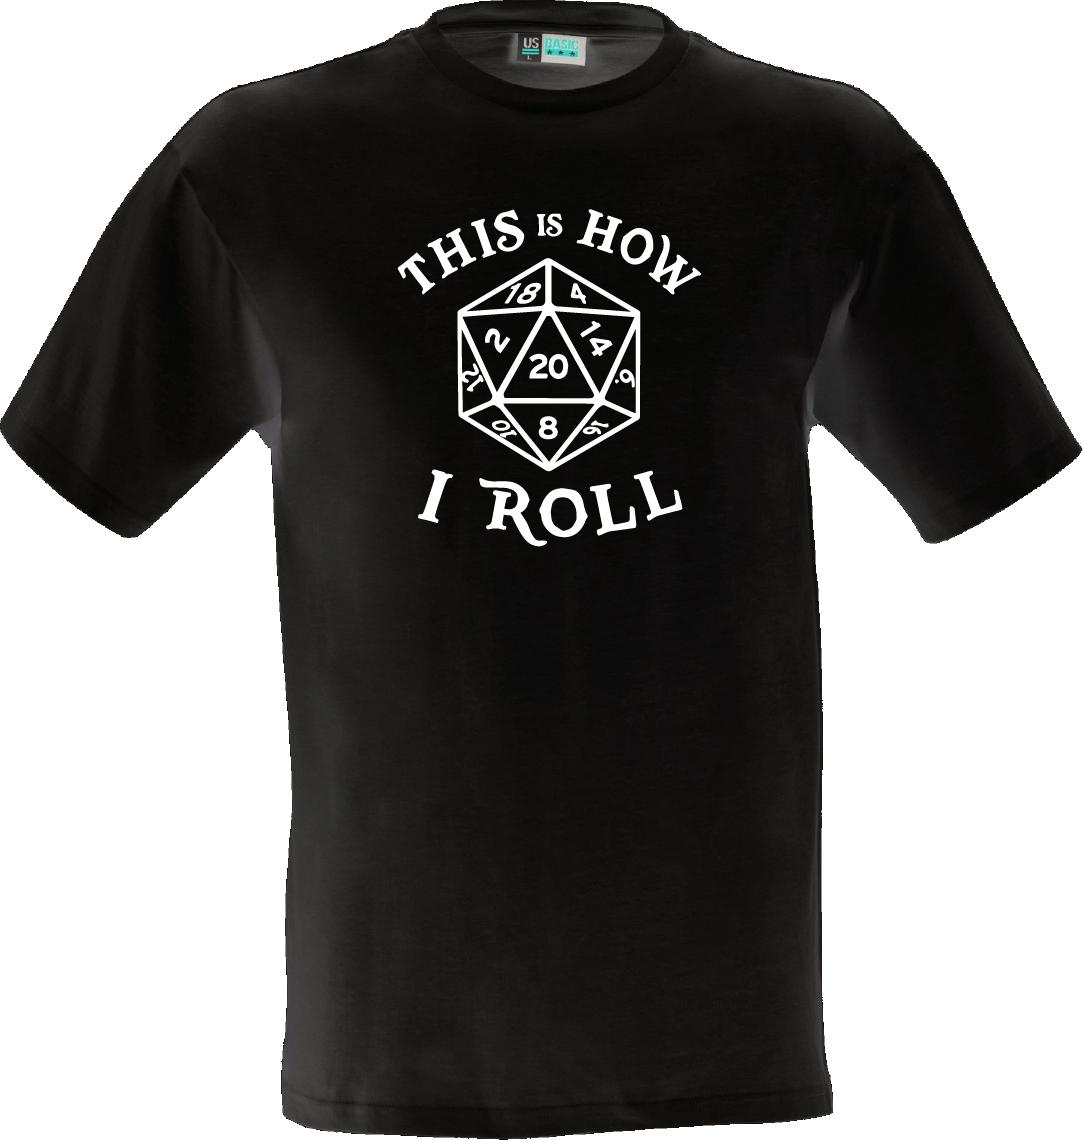 How I Roll - magic the gathering shirt roleplay board game dice d20 present  gift Funny free shipping Tshirt top